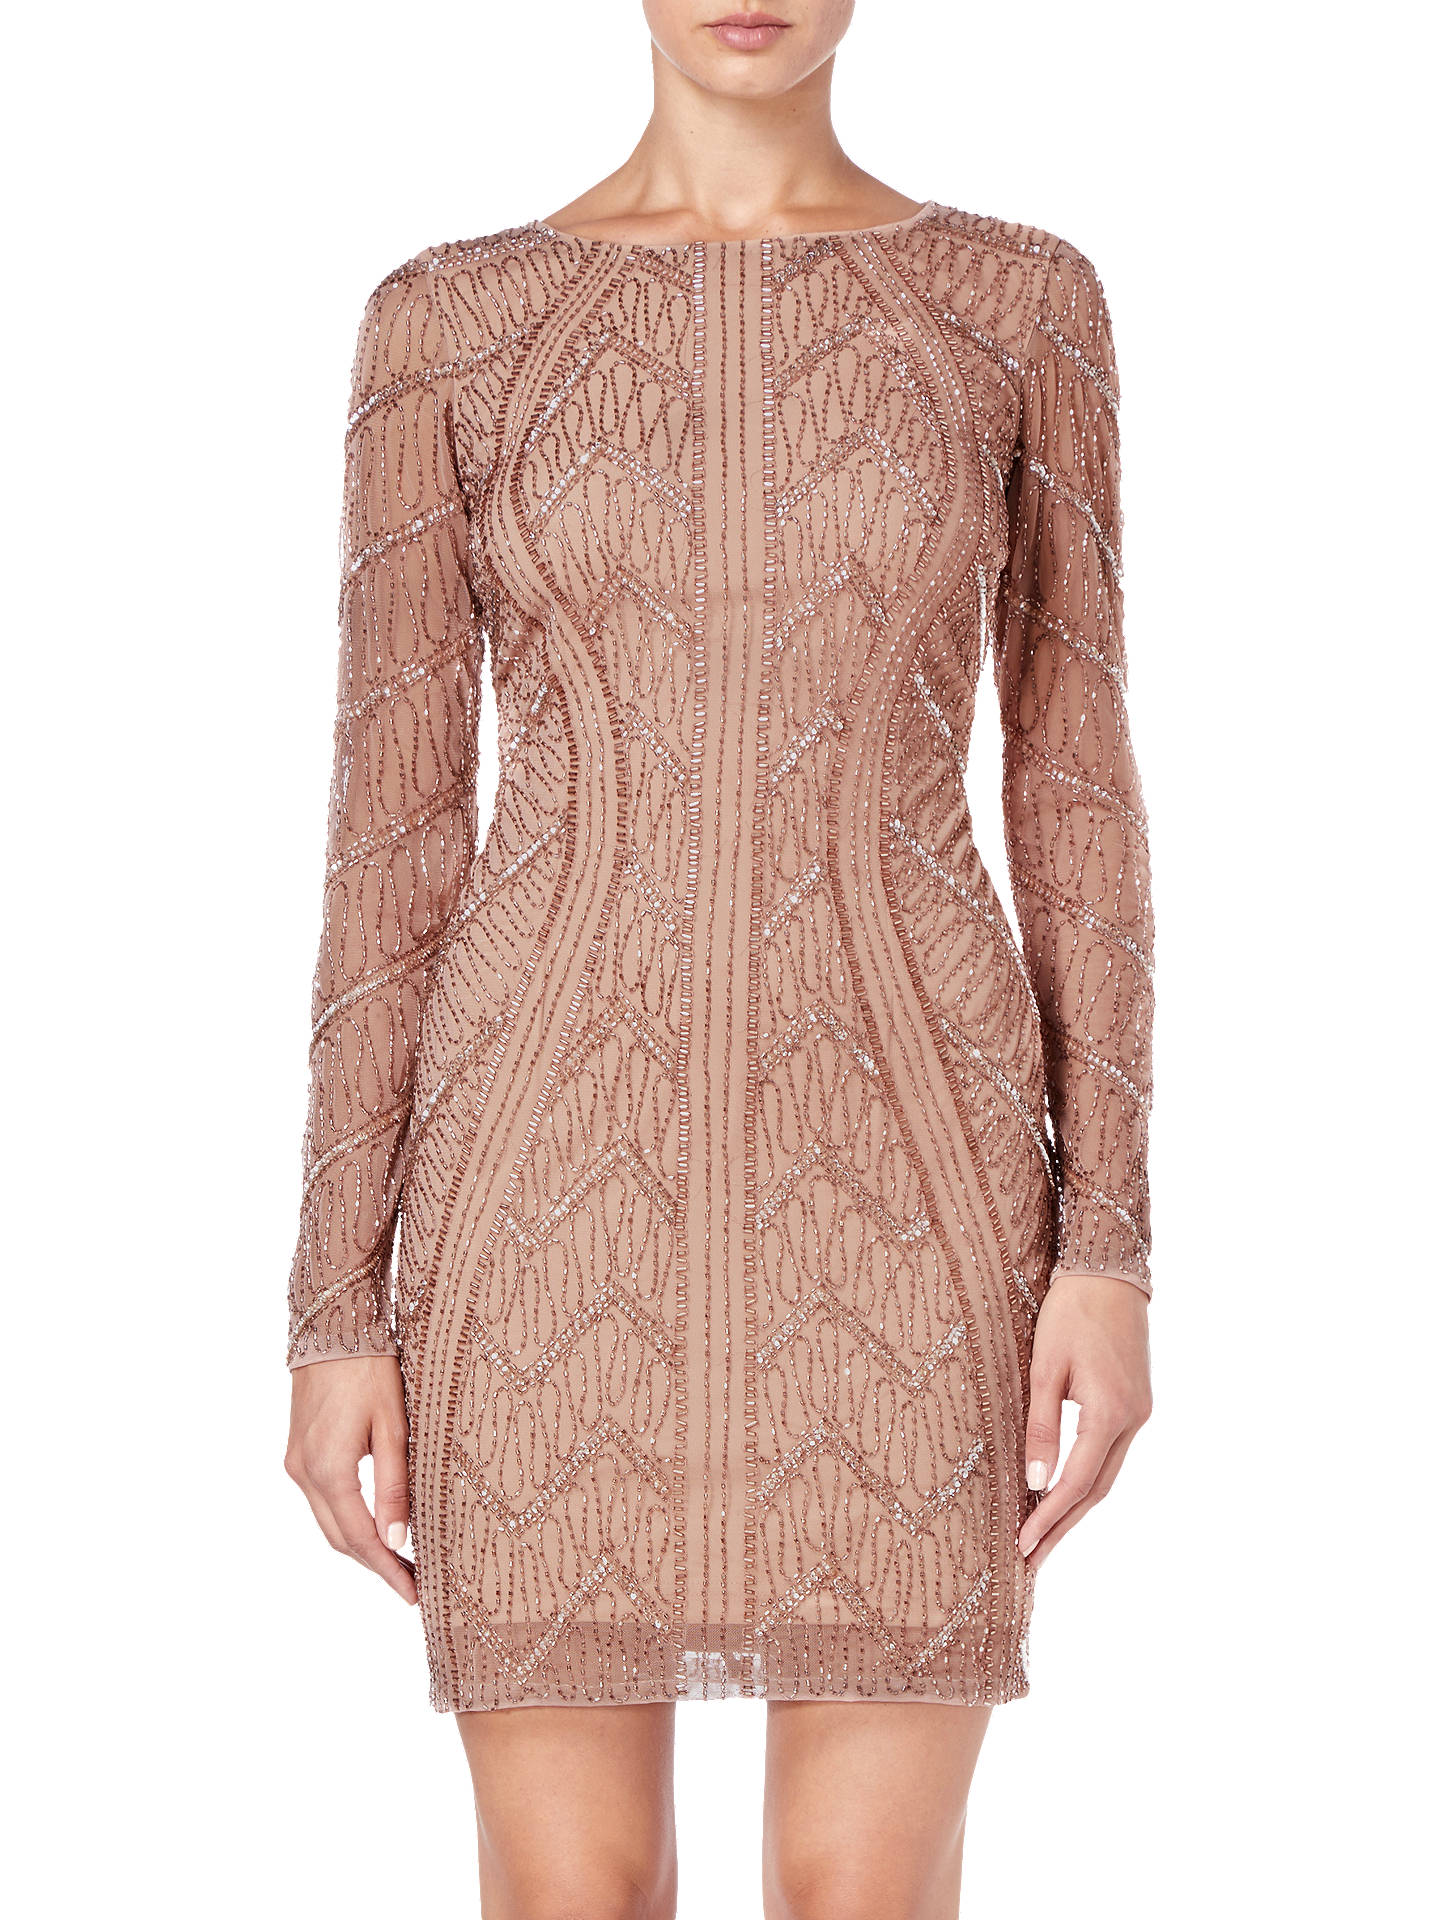 59ca2509 Buy Adrianna Papell Beaded Short Dress, Rose Gold, 16 Online at  johnlewis.com ...